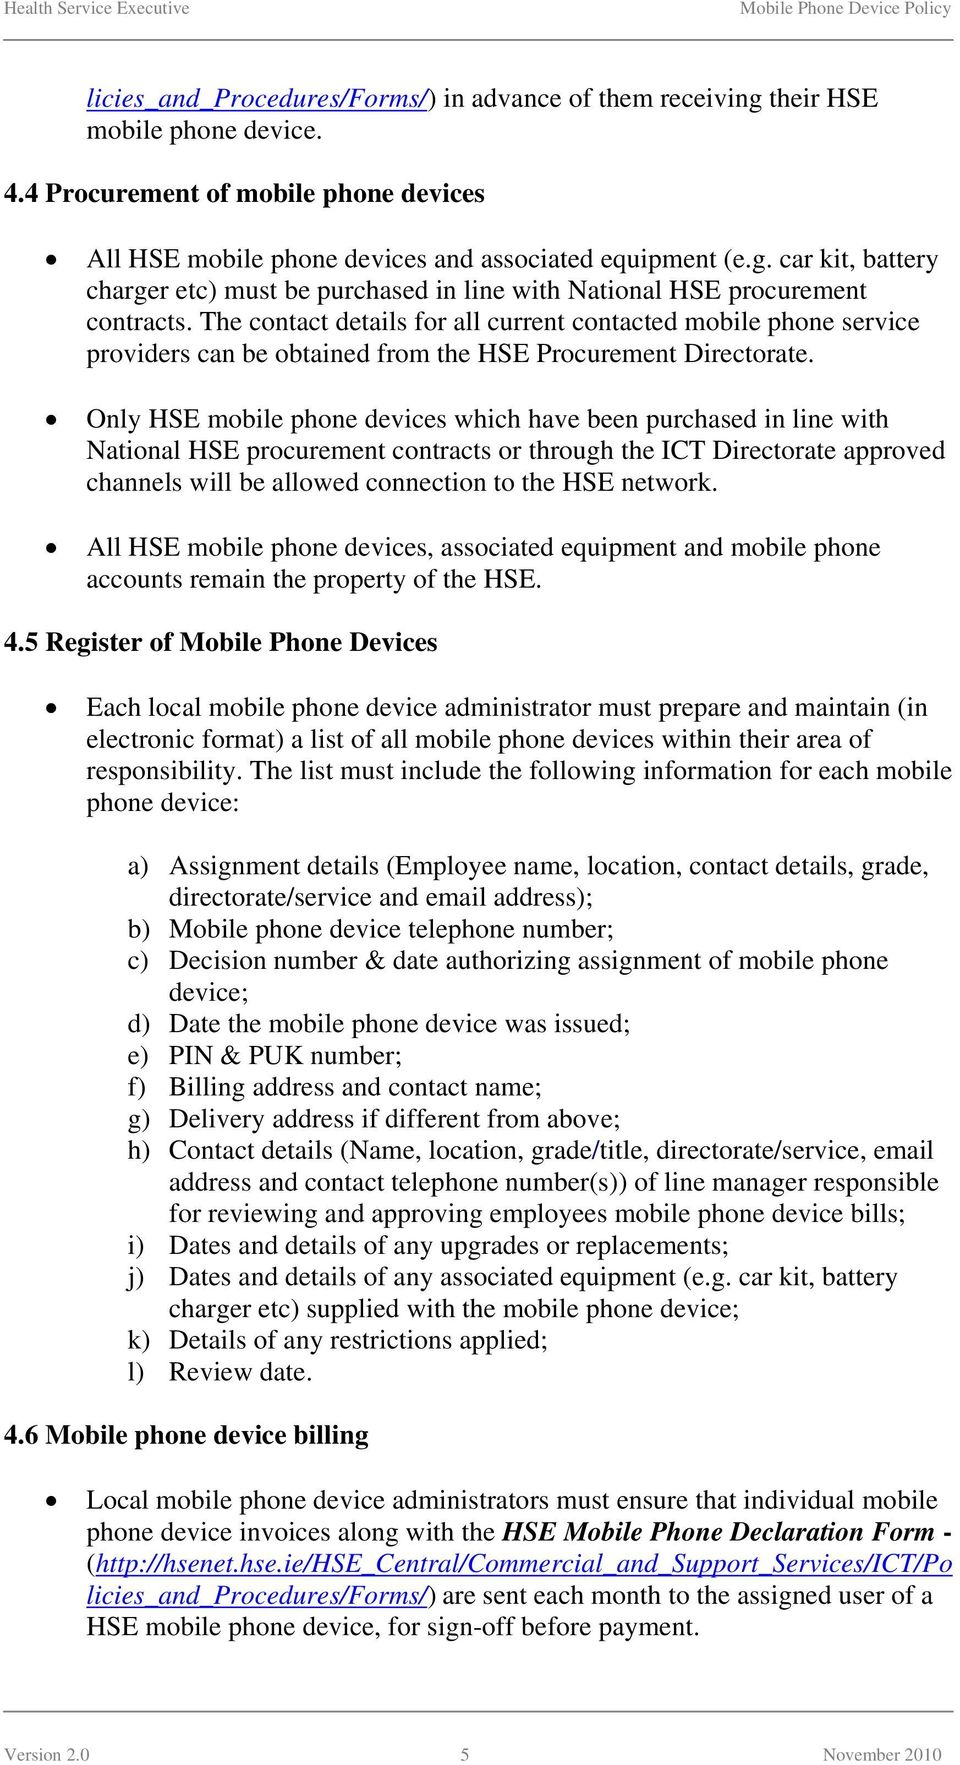 Only HSE mobile phone devices which have been purchased in line with National HSE procurement contracts or through the ICT Directorate approved channels will be allowed connection to the HSE network.